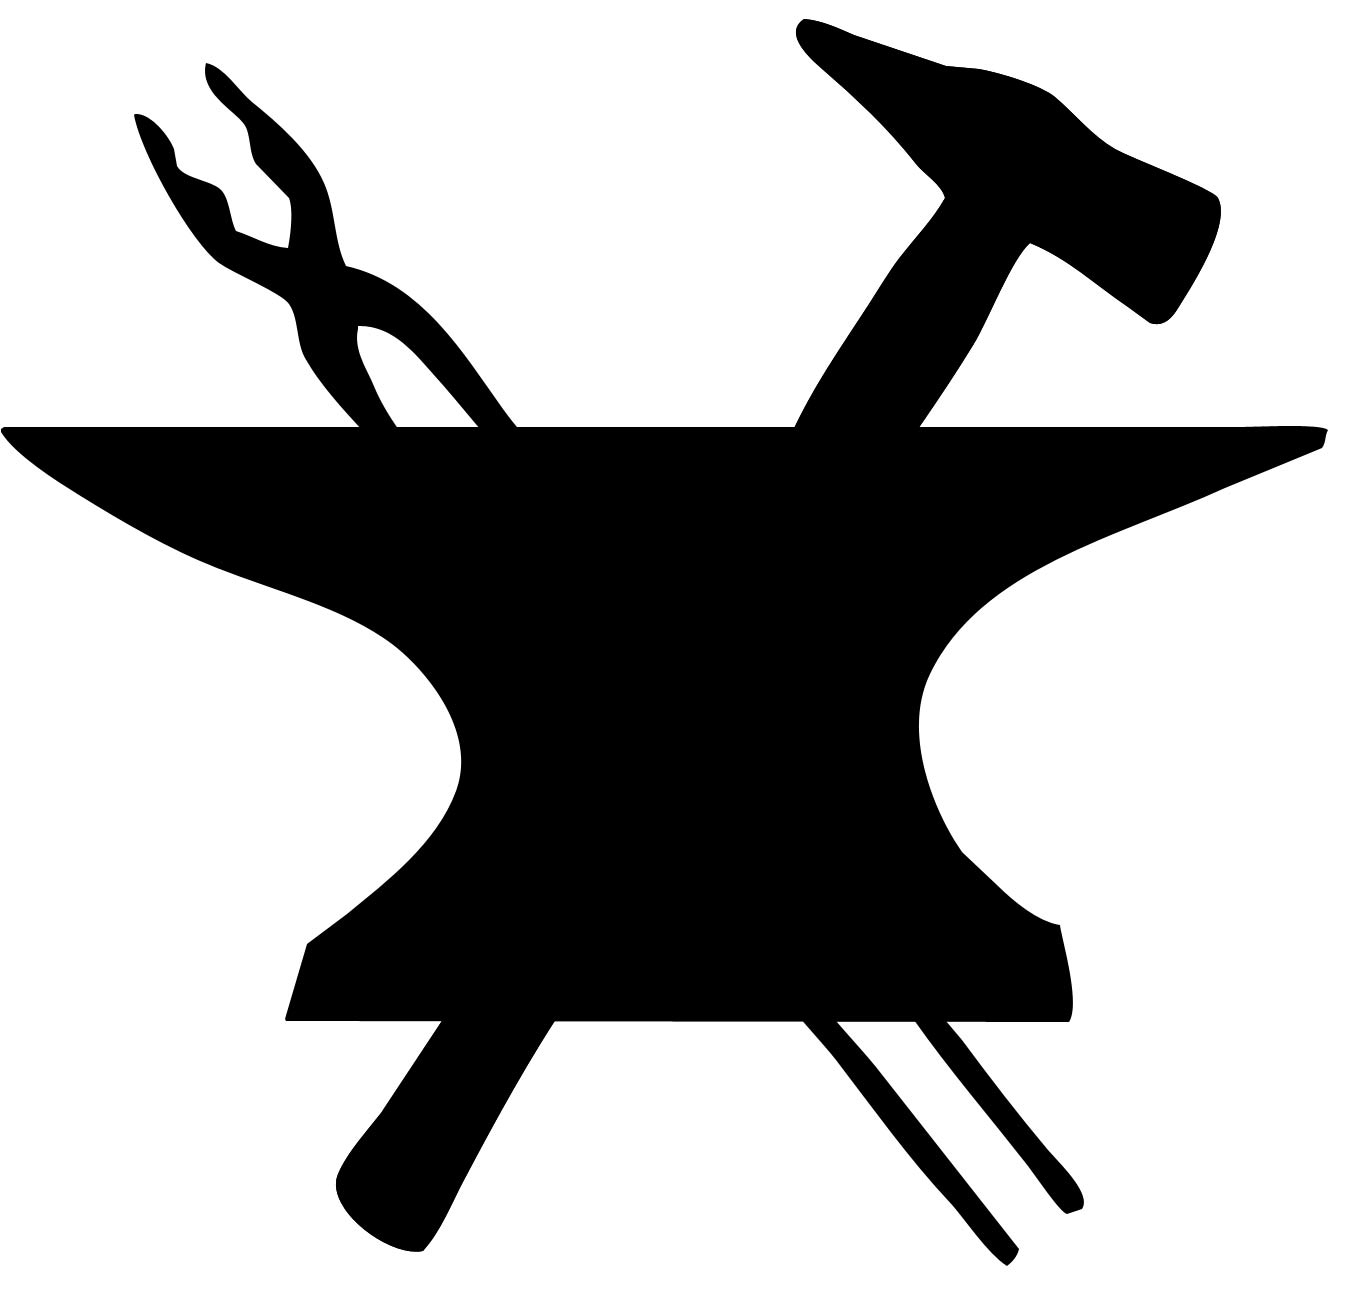 Fileblacksmith Icon Symbol Hammer And Anvilg Wikipedia